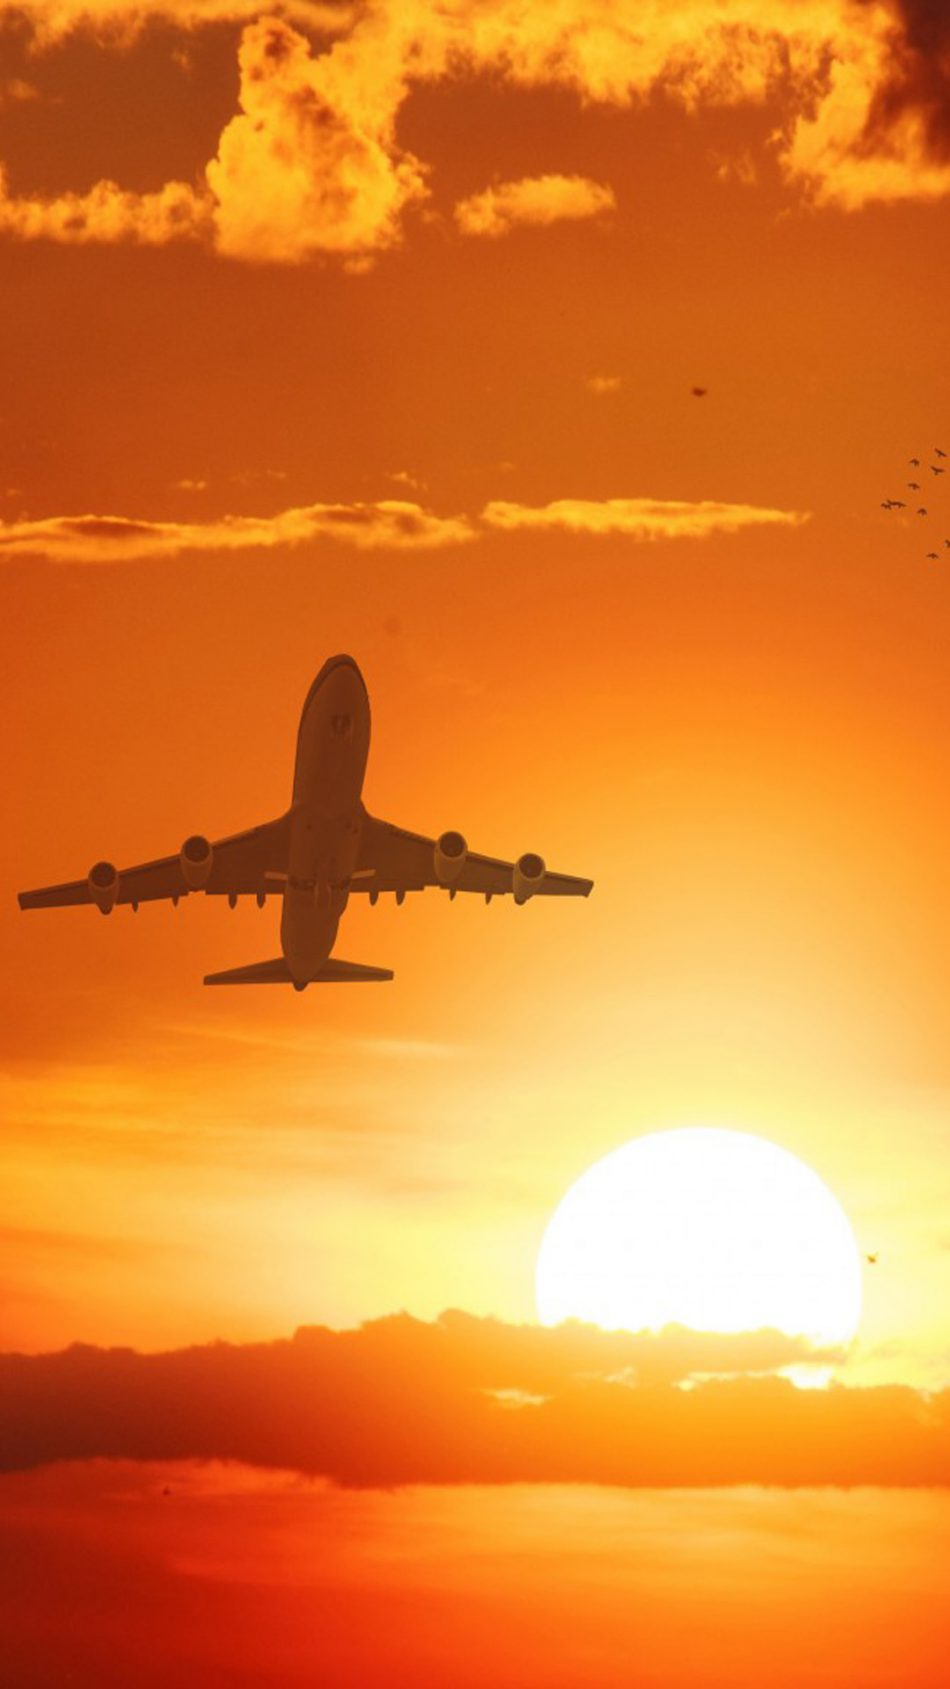 Airplane Flight Sunset Clouds Hd Mobile Wallpaper